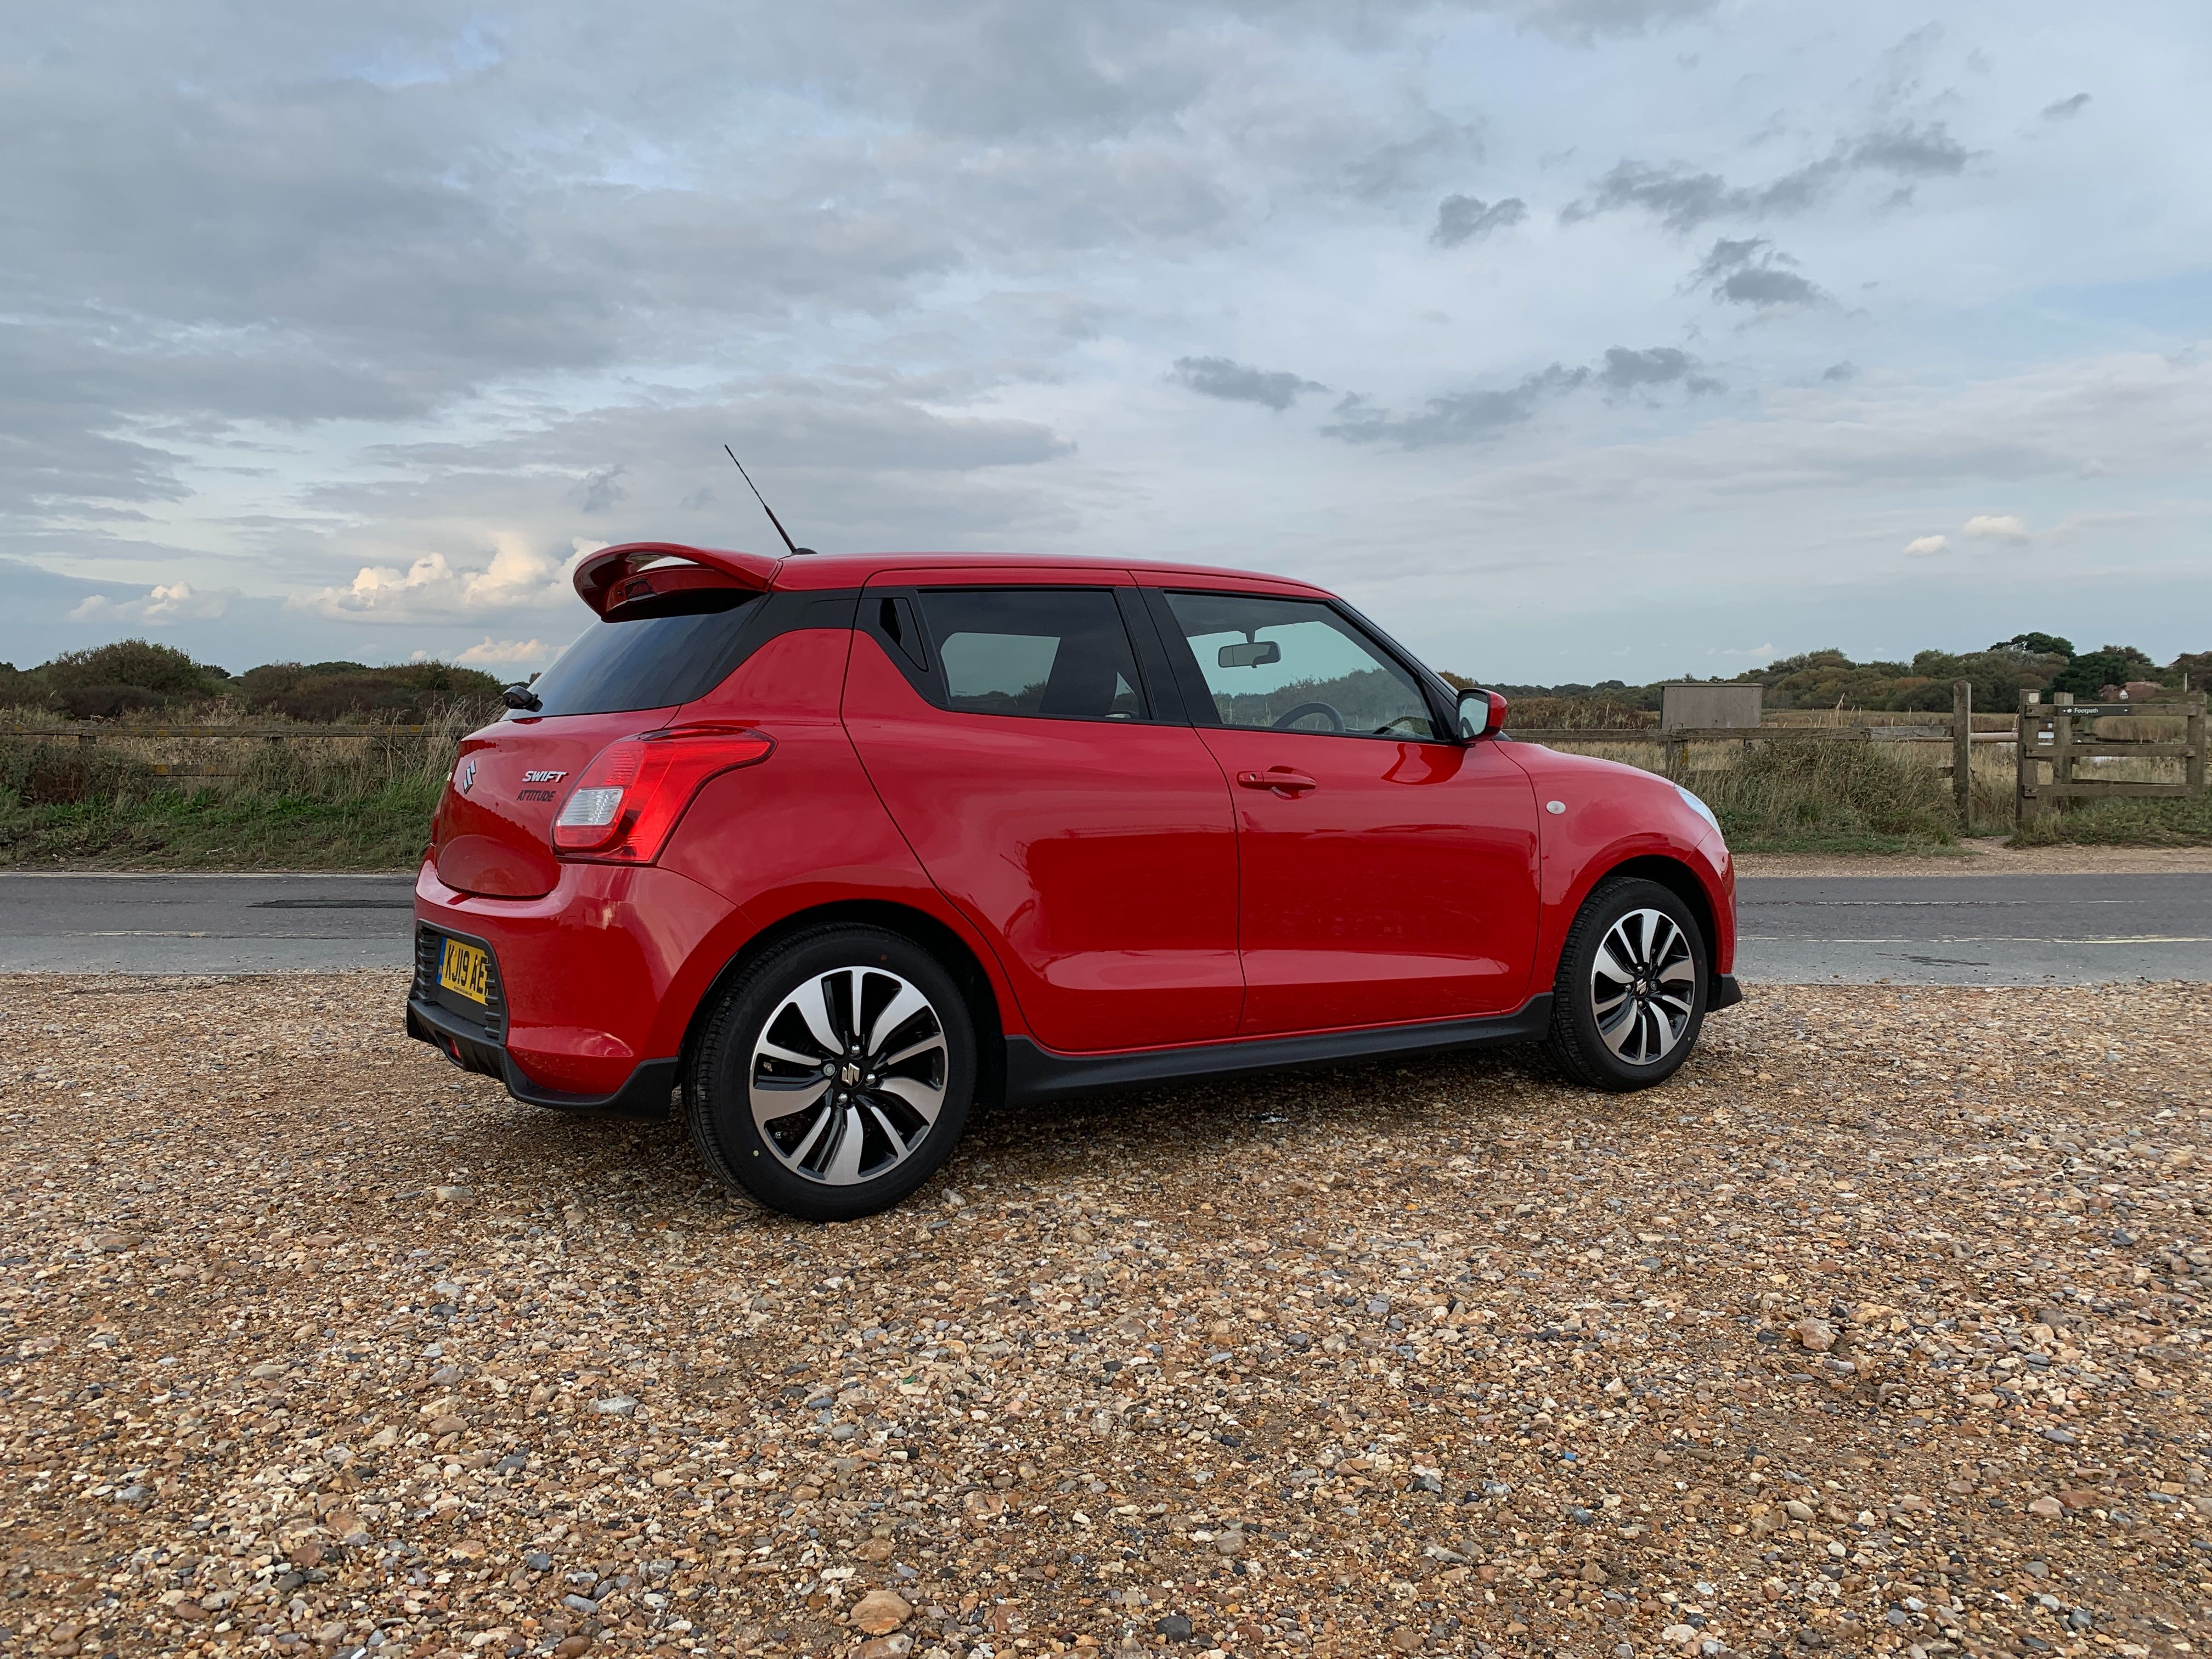 A small spoiler gives the Swift a sporty appearance